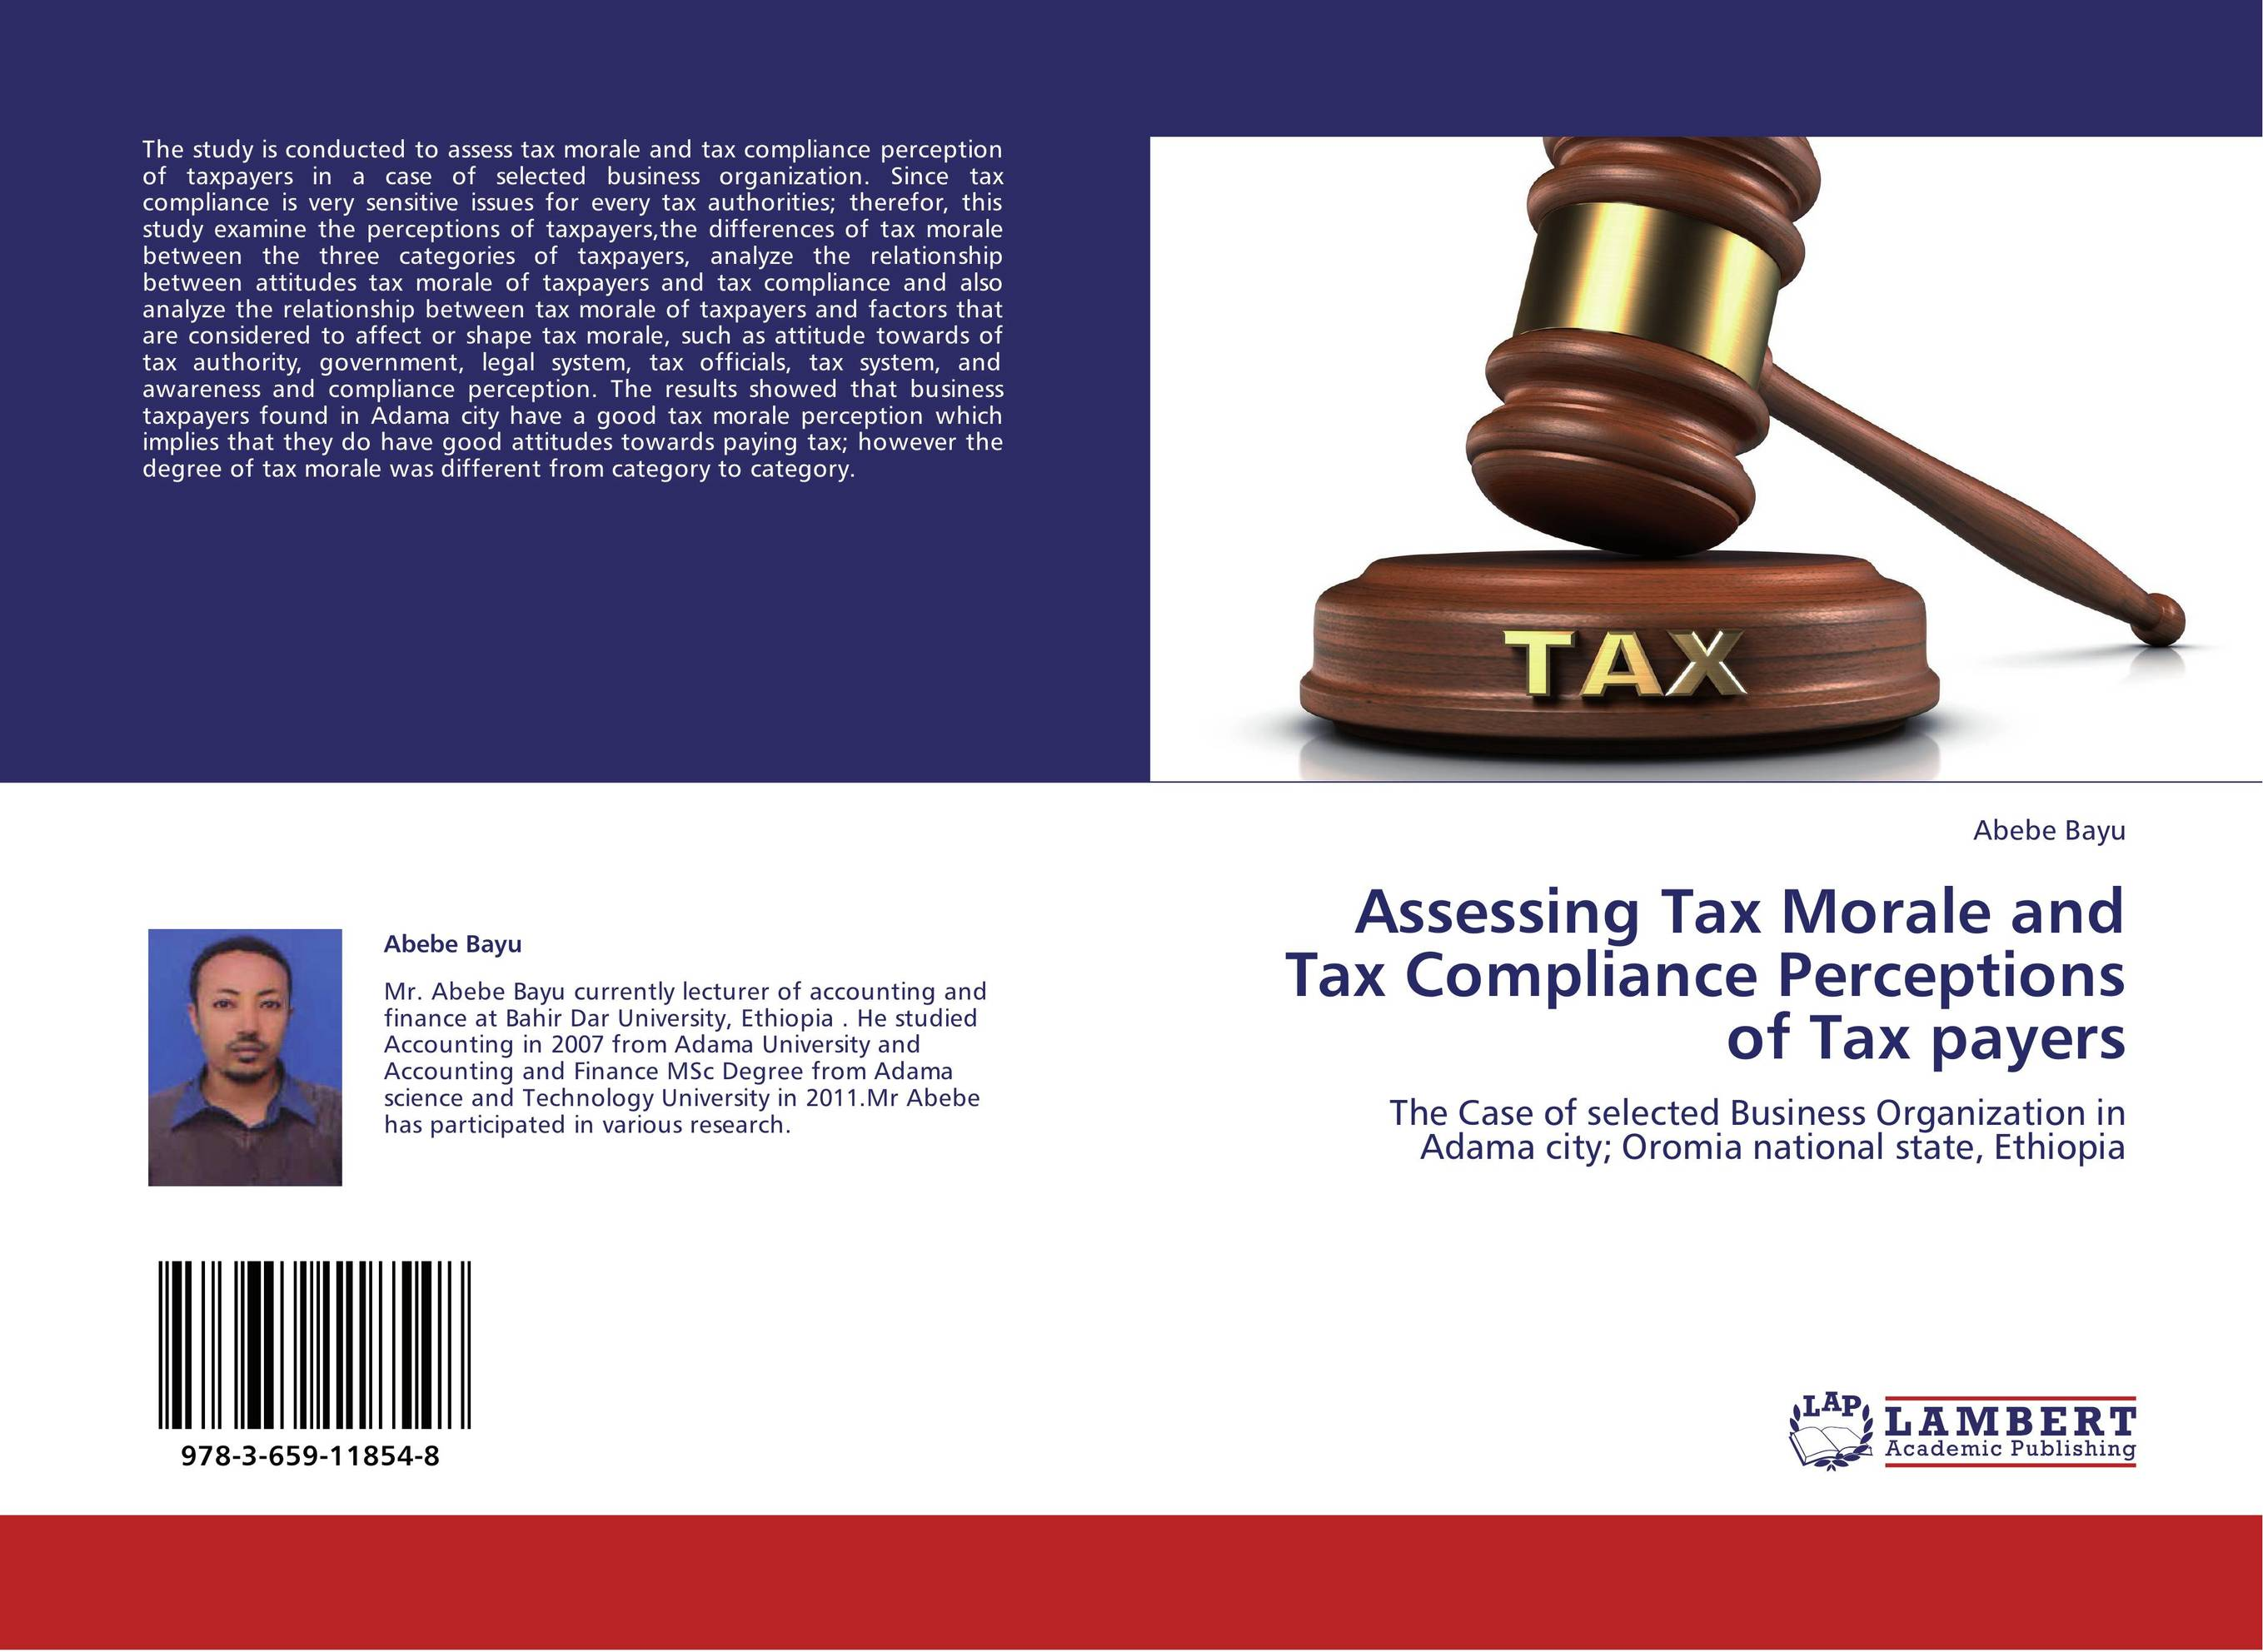 factors affecting tax compliance of small and Tax is the main source of government revenue not only for developed countries but also for developing countries like tanzania due to importance of tax revenue and given that most public social services are funded by tax revenue, this study is bestowed on effective tax administration as an engine of tax collections.